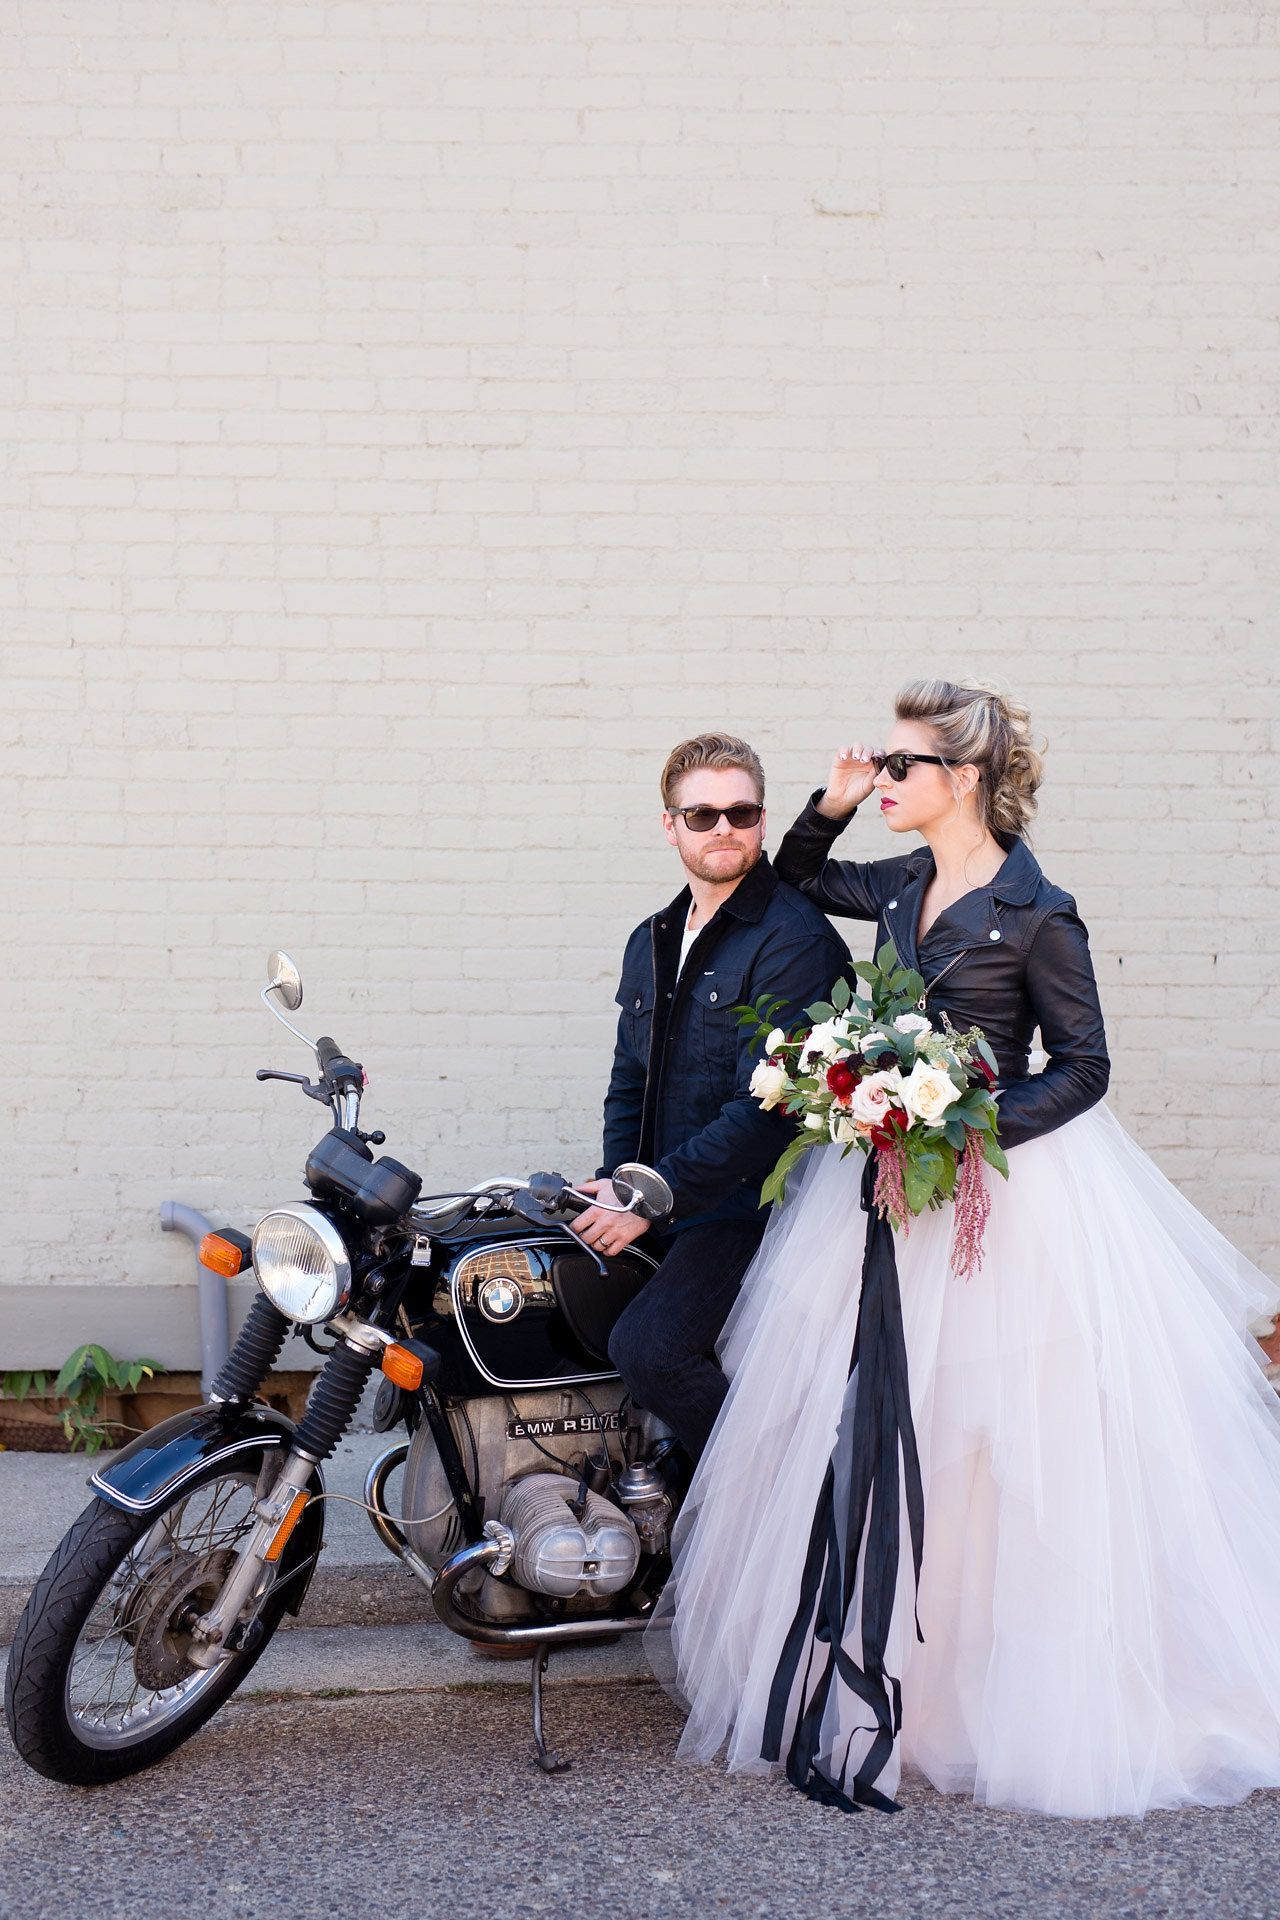 Sweet and Edgy Romance Wedding Inspiration | Pinterest | Rock ...